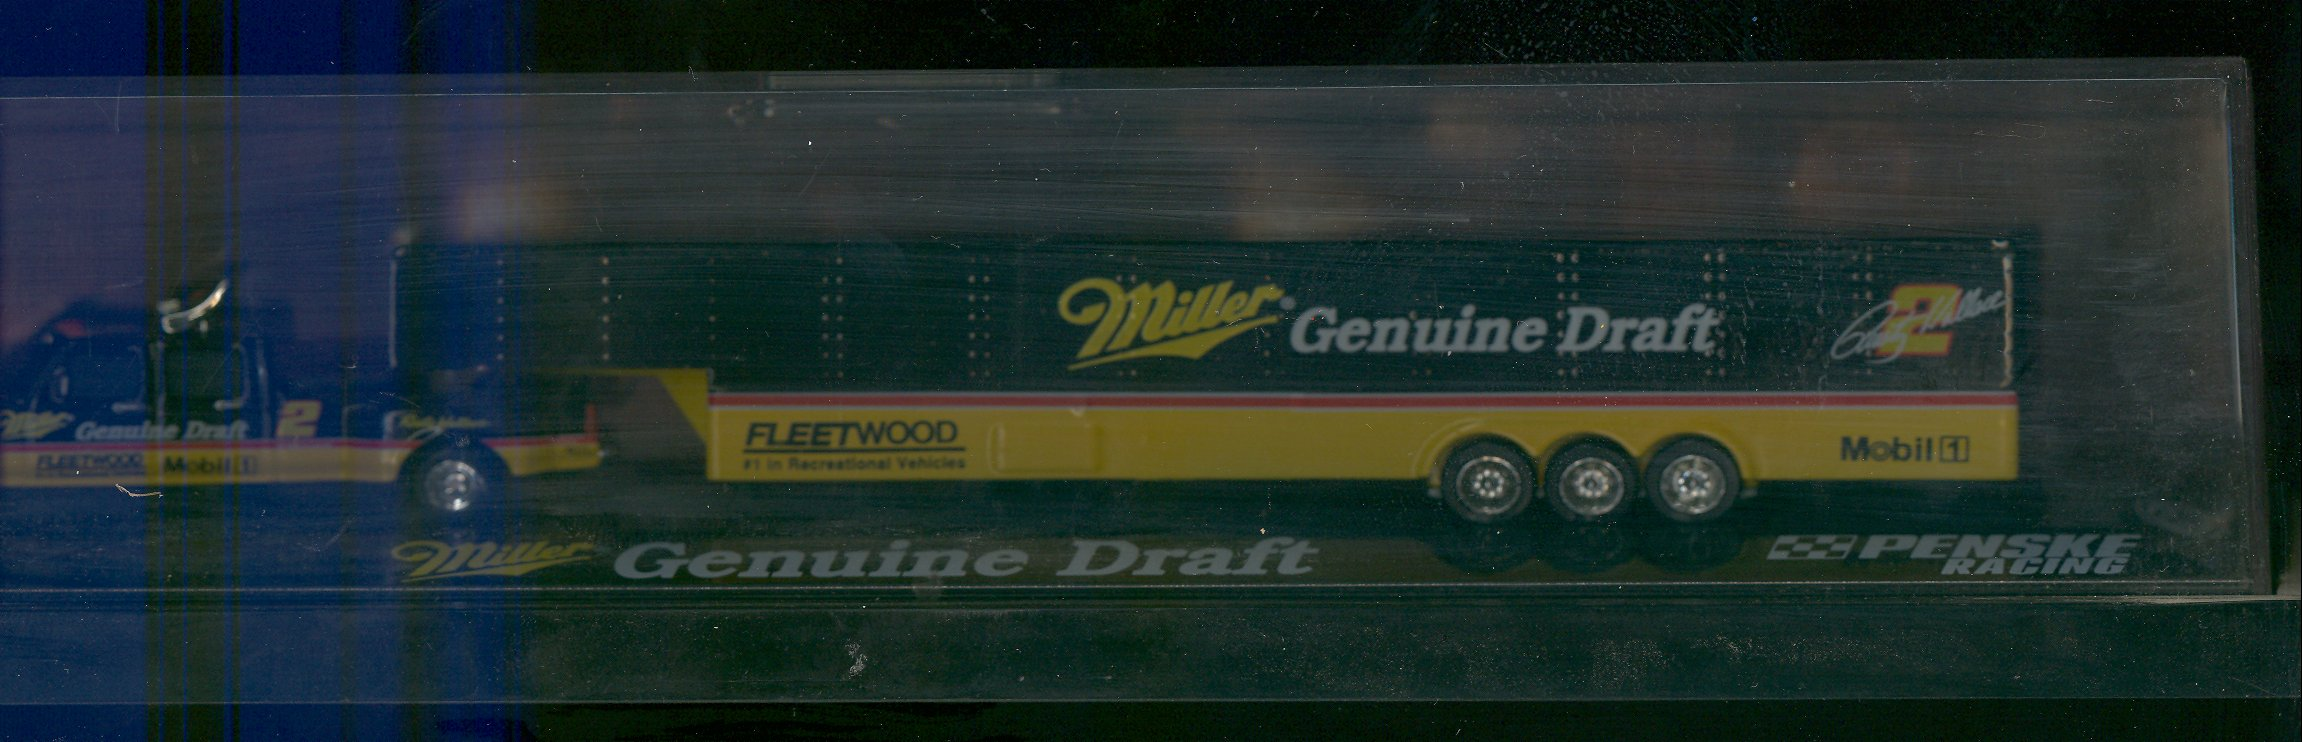 1995 Action/RCCA Dually Trucks with Trailer 1:64 #2 R.Wallace/Miller Genuine Draft